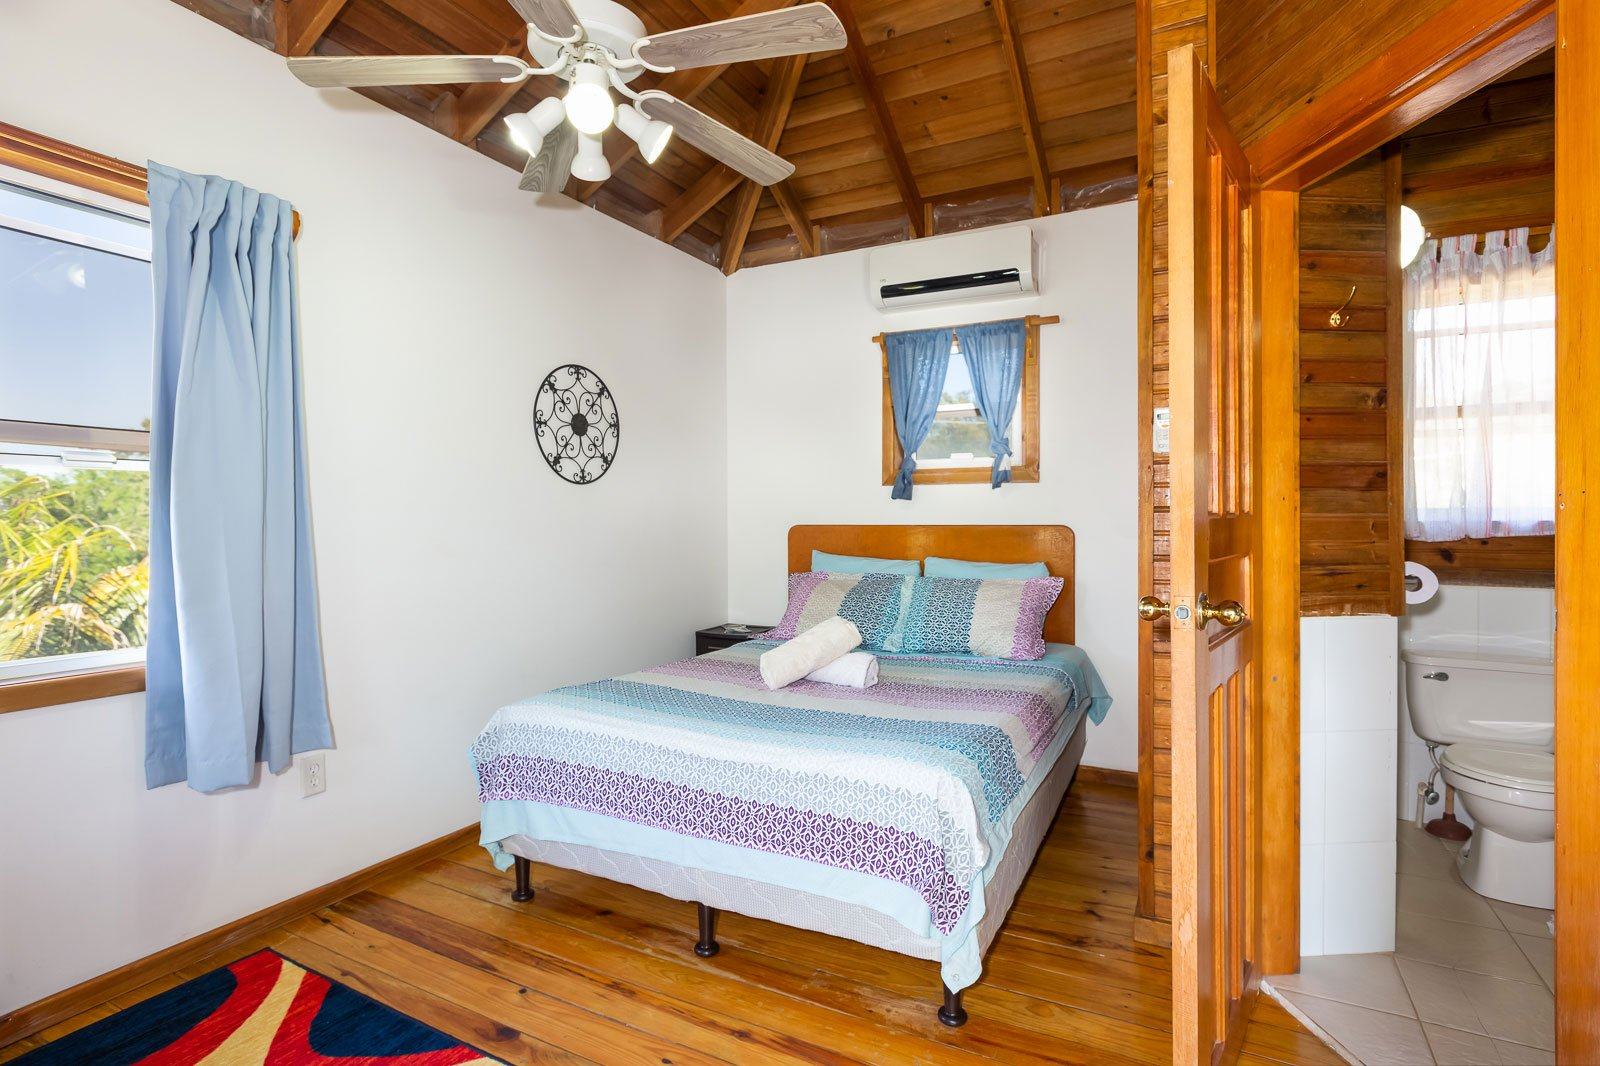 https://roatan-guavagrove.com/wp-content/uploads/2020/02/places-to-stay-in-roatan.jpg